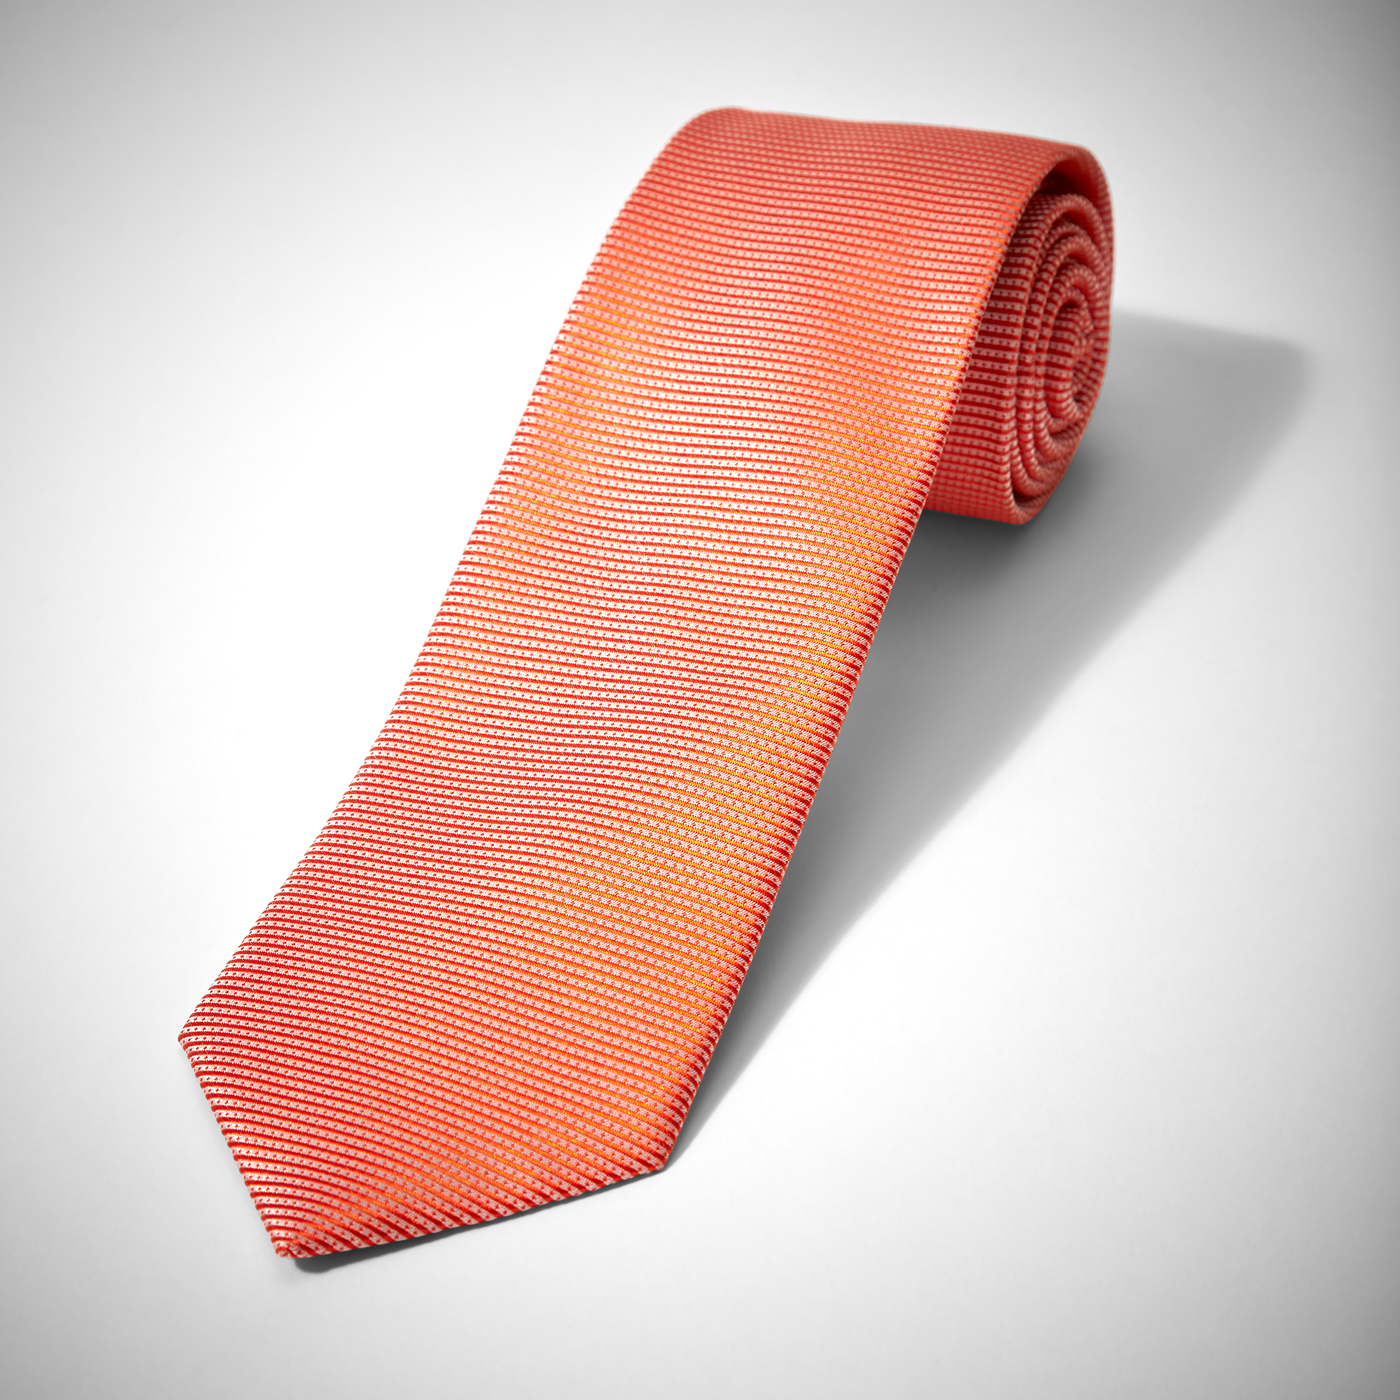 Iridescent Orange Dobby Tie